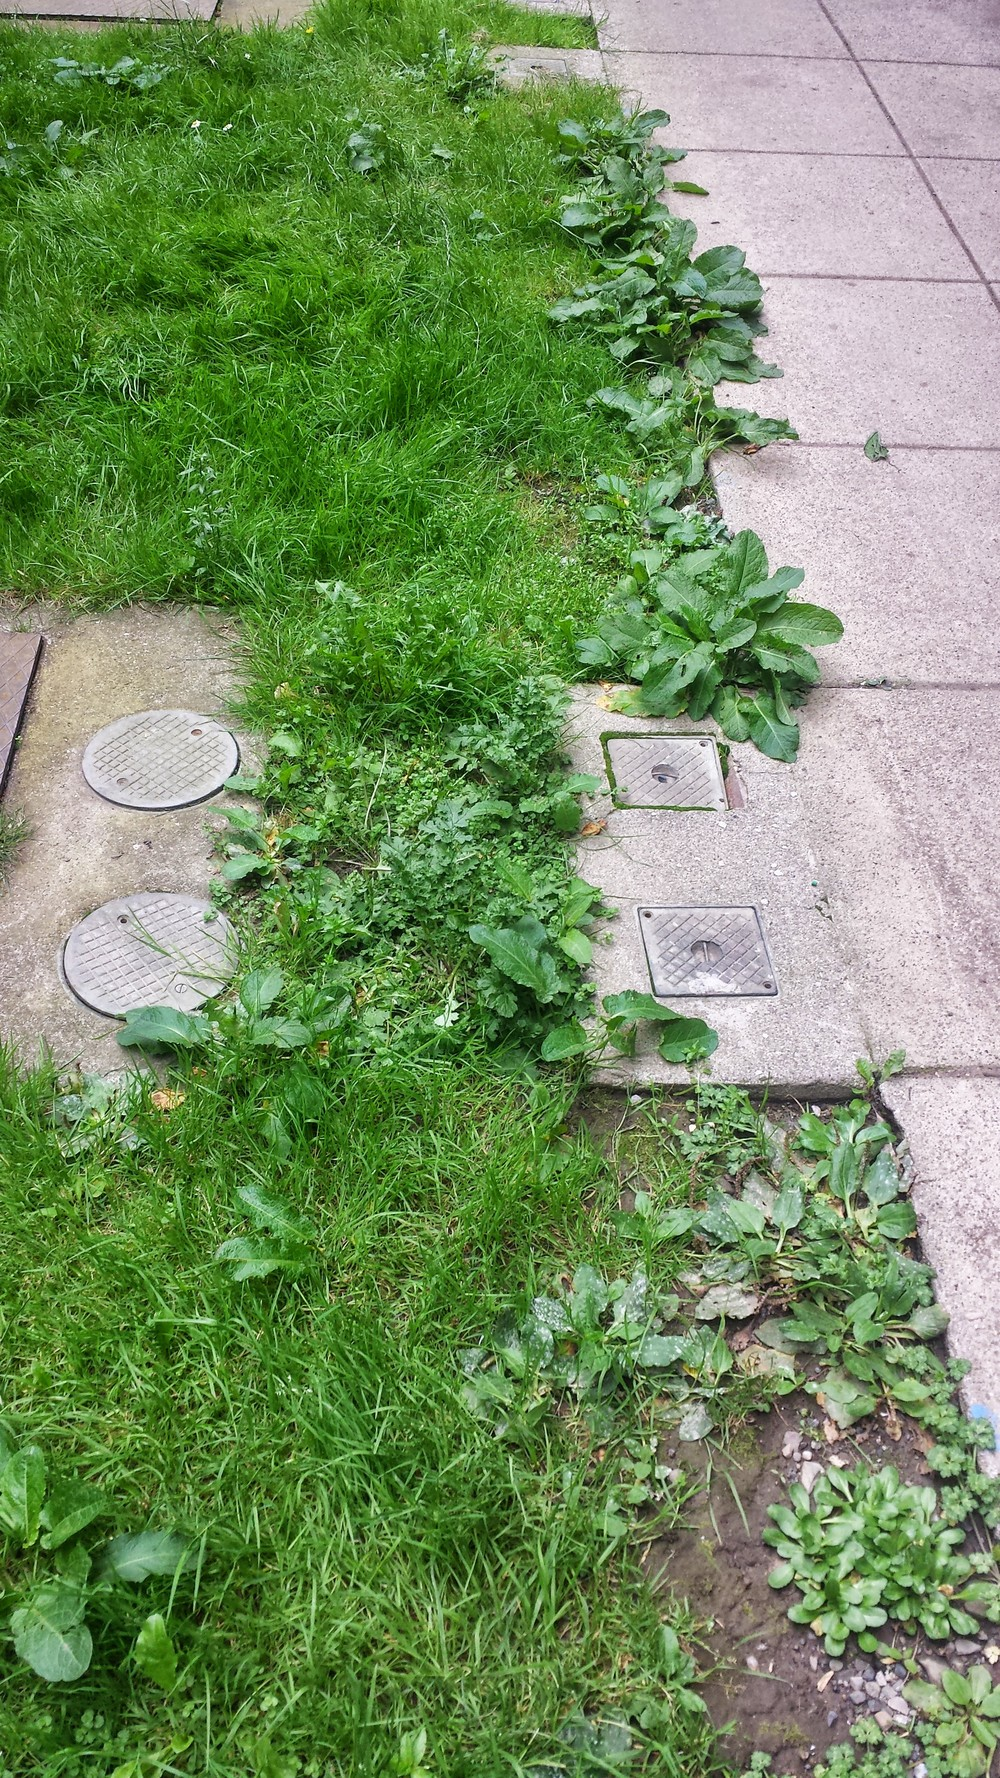 patchy old lawn